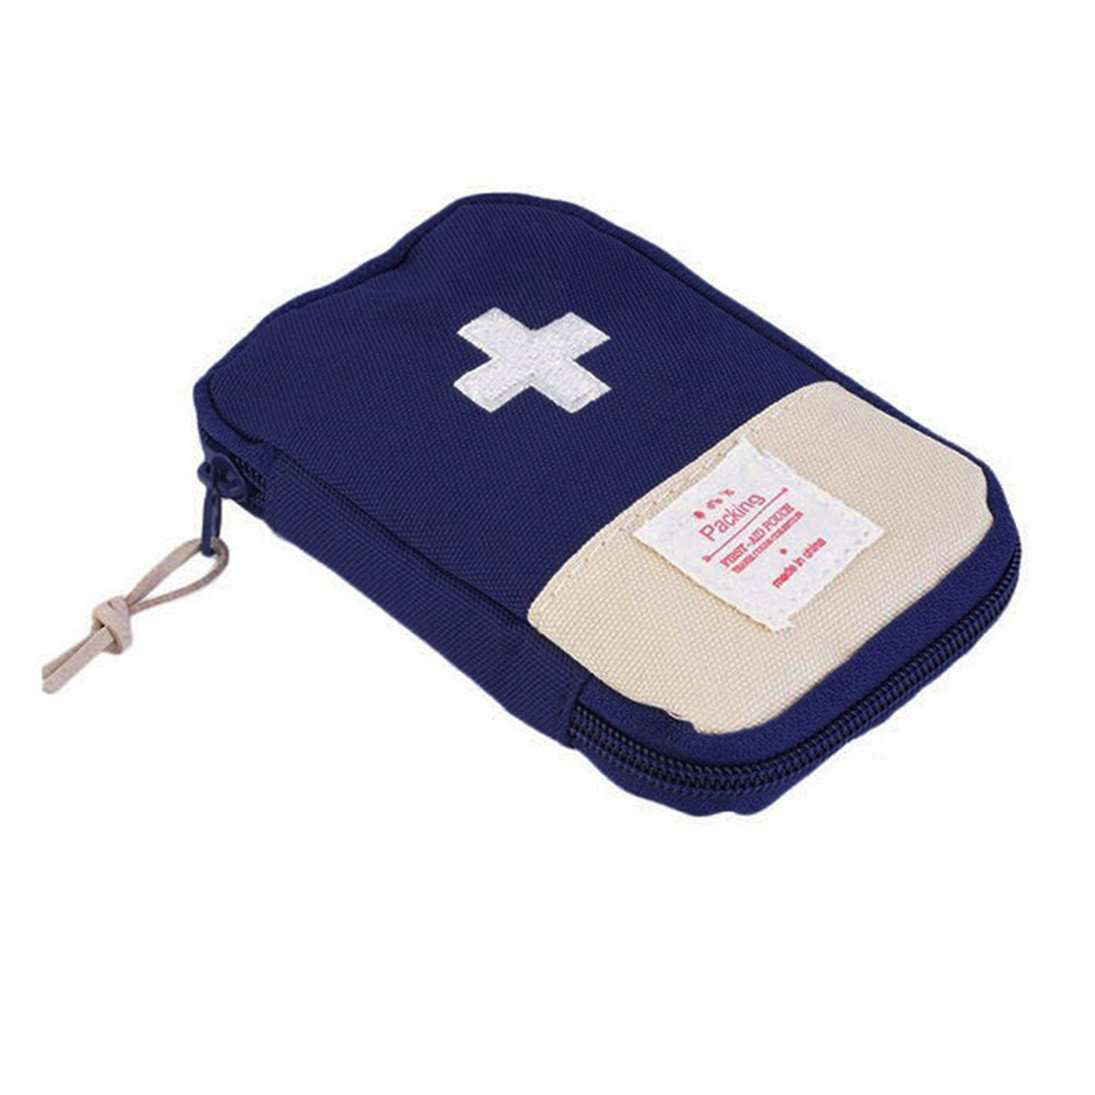 Finance Plan Mini Outdoor Camping Travel Response Case Portable First Aid Kit Bag Pill Pouch (Sapphire Blue)